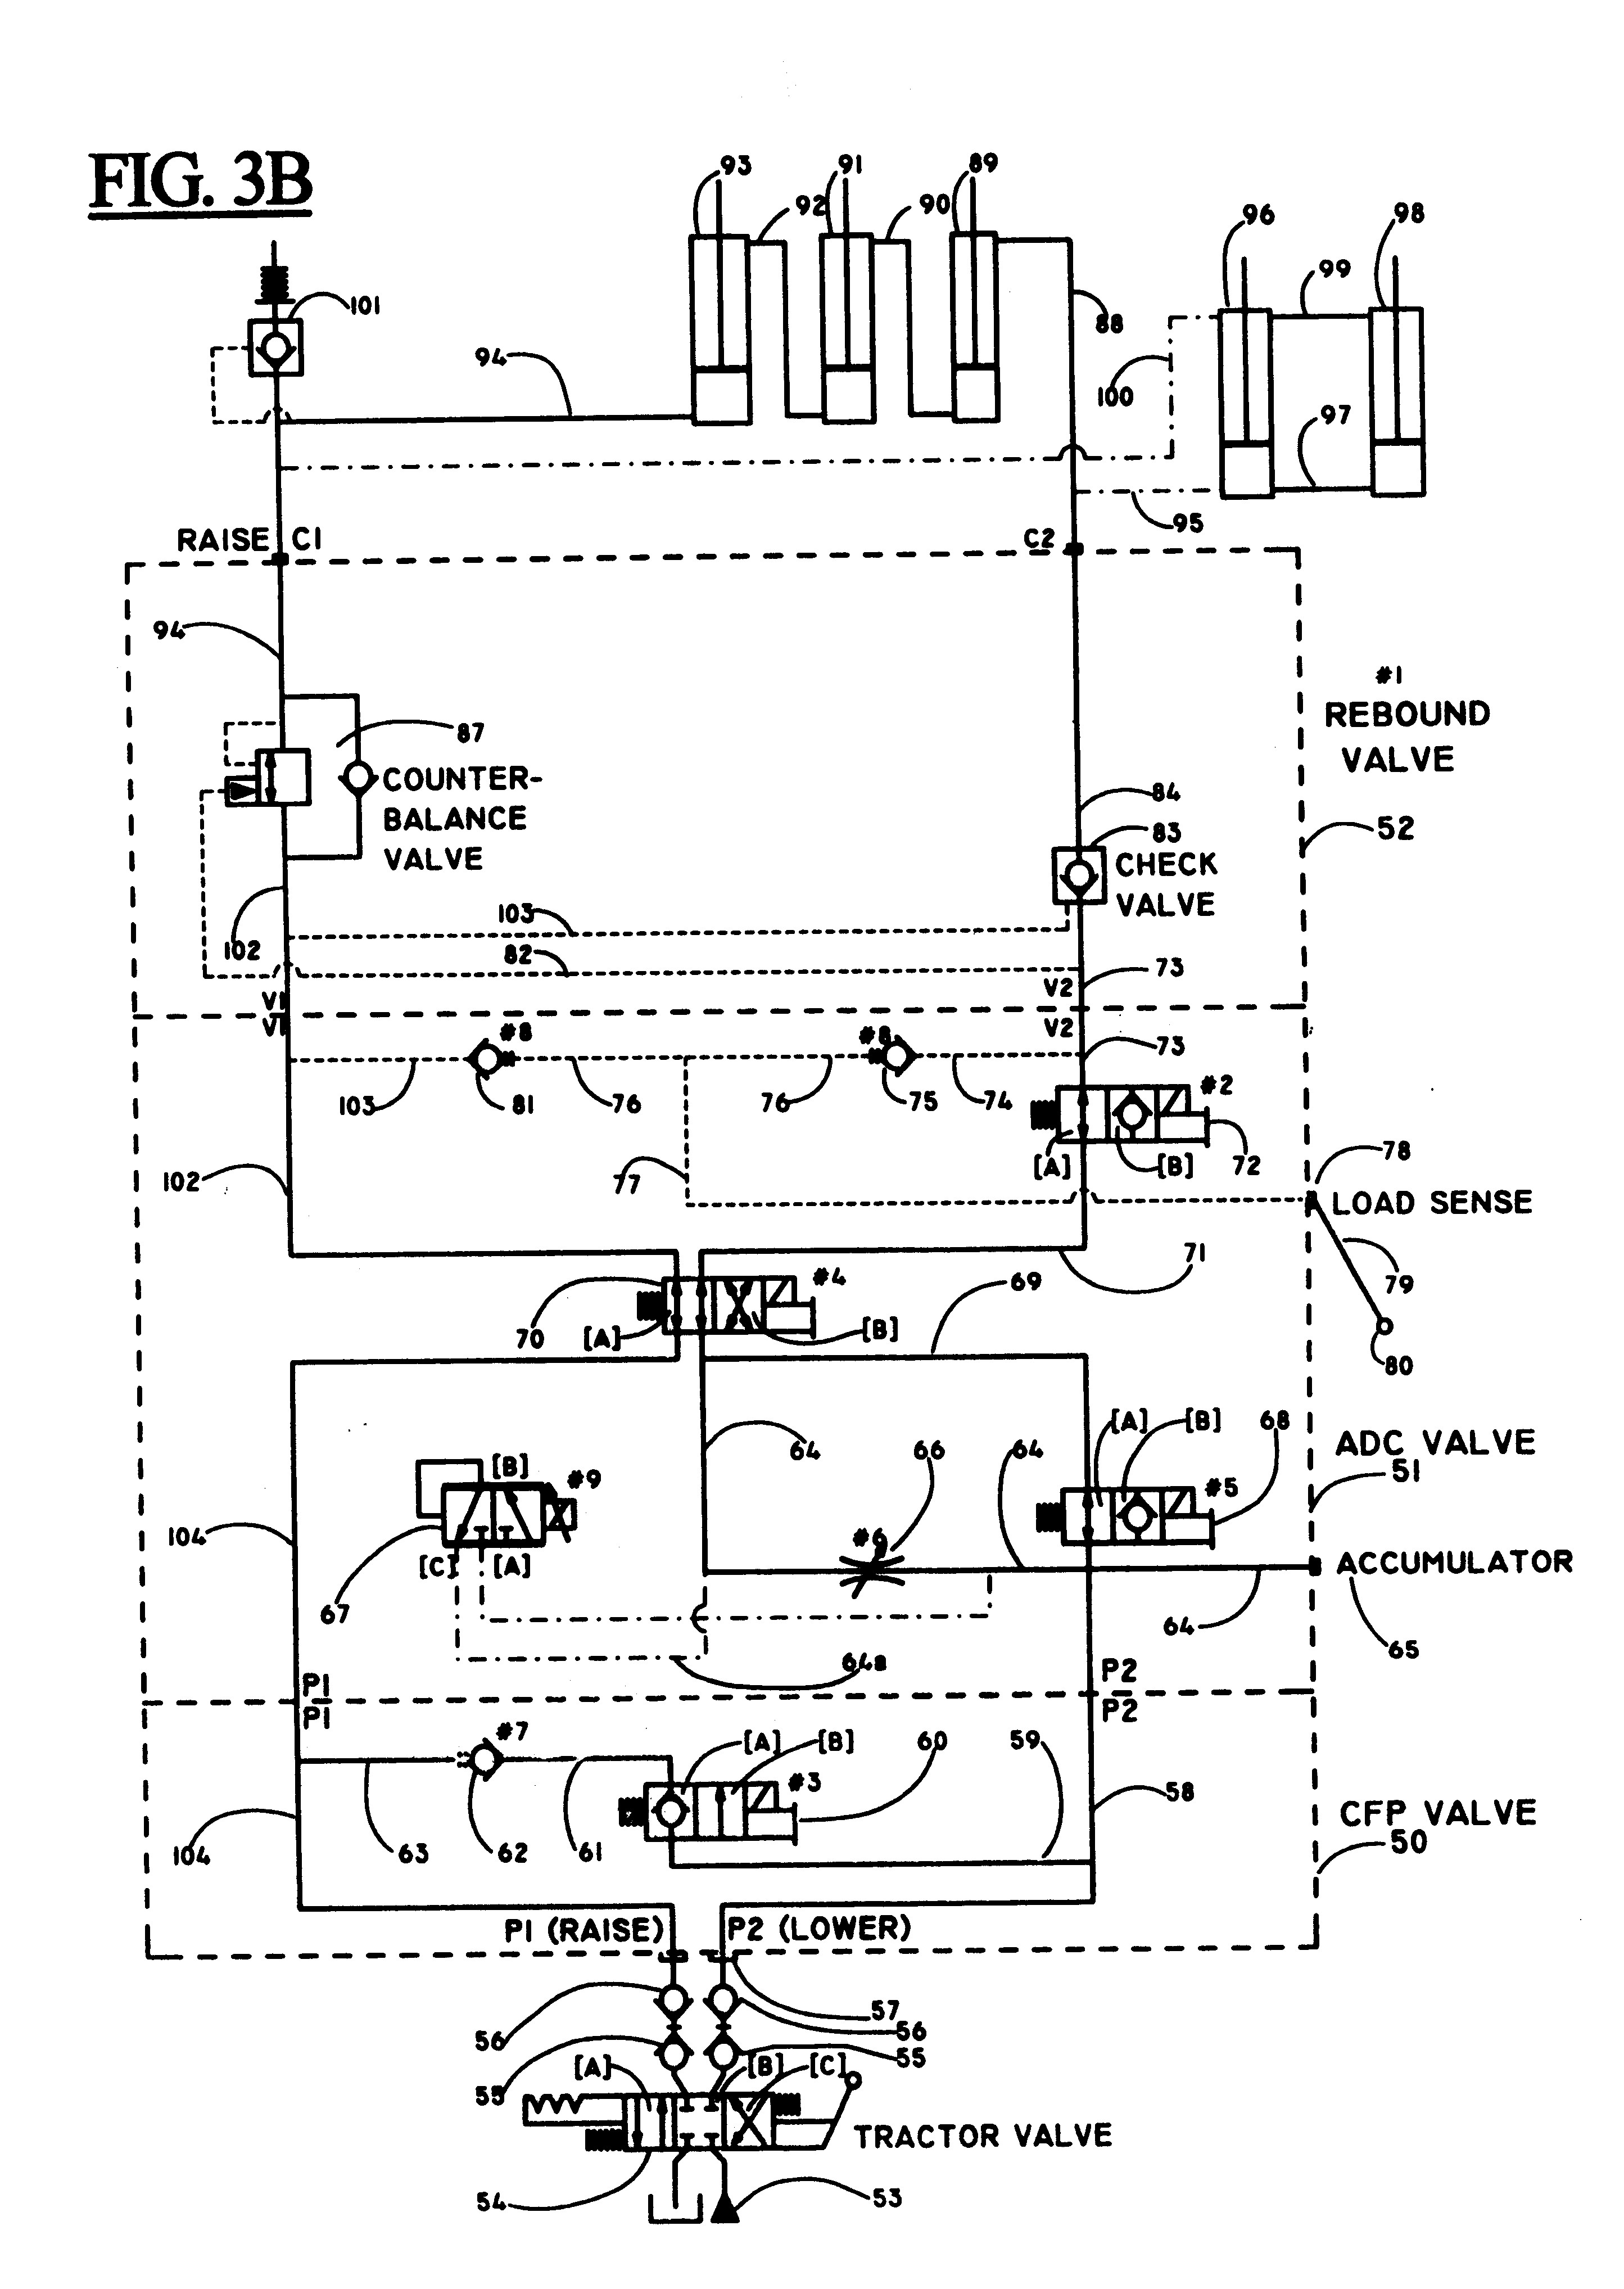 Patent Us Joystick Control For Automatic Depth Drawing John Deere Rate Controller Wiring Diagram Nh3